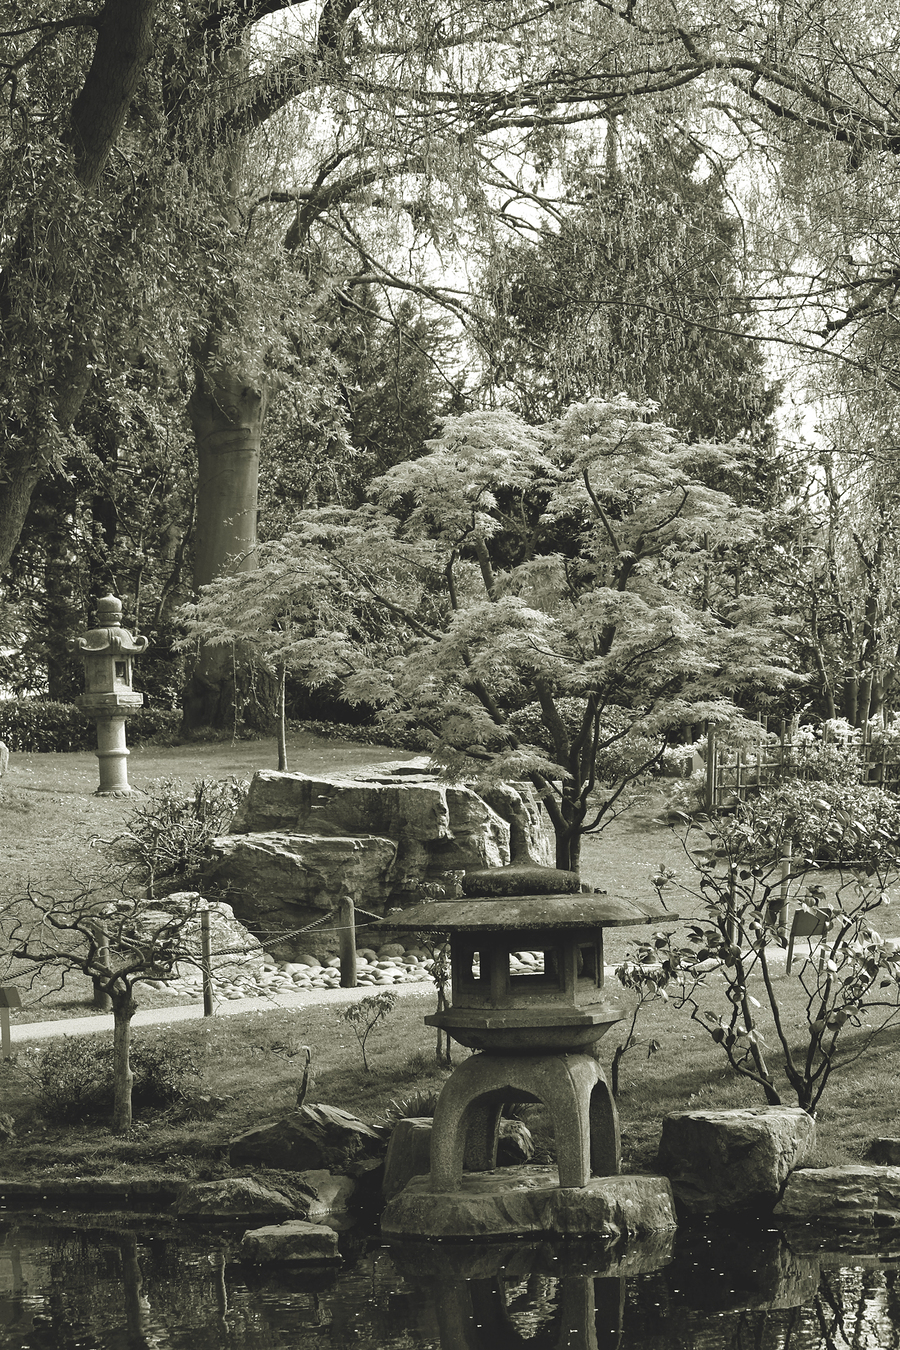 Kyoto Garden / Photography by Delphic Photography / Uploaded 4th April 2021 @ 08:38 PM